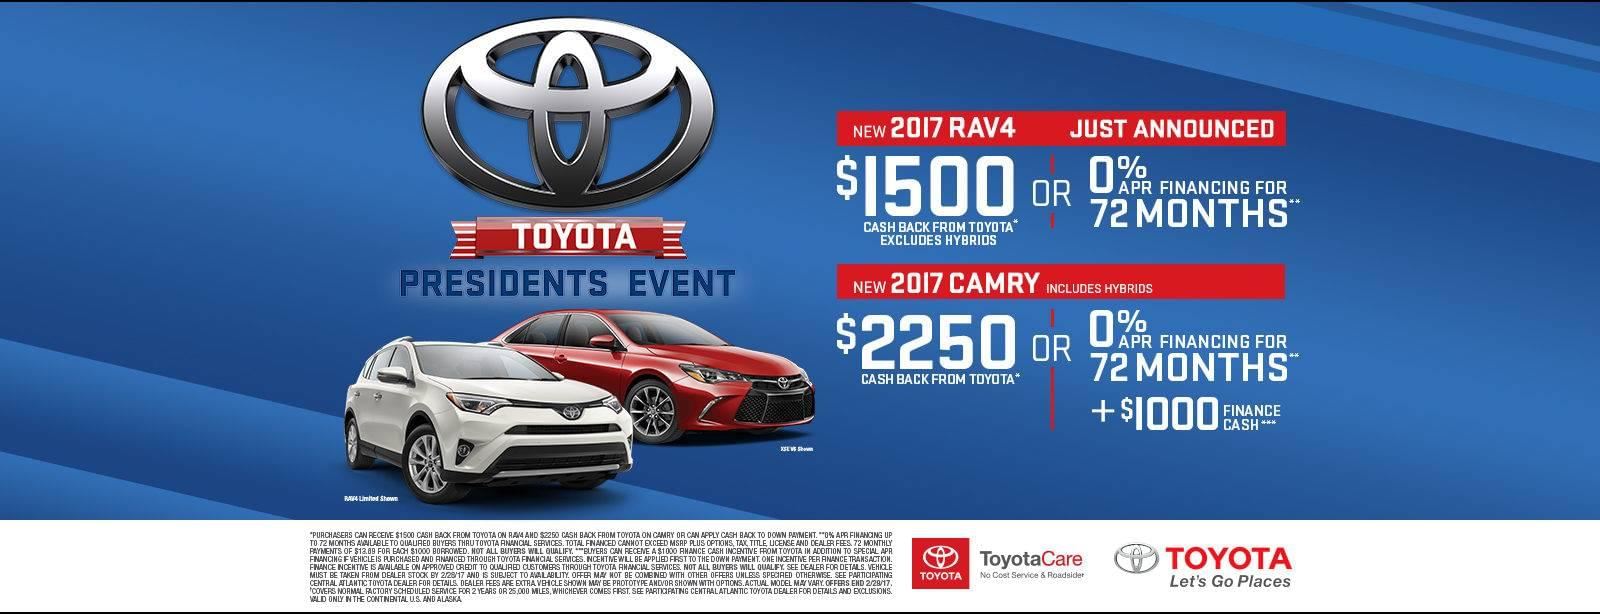 2-17_01_cat-presidents-day-just-announced_1920x614_0000007015_rav4-camry_r_xta